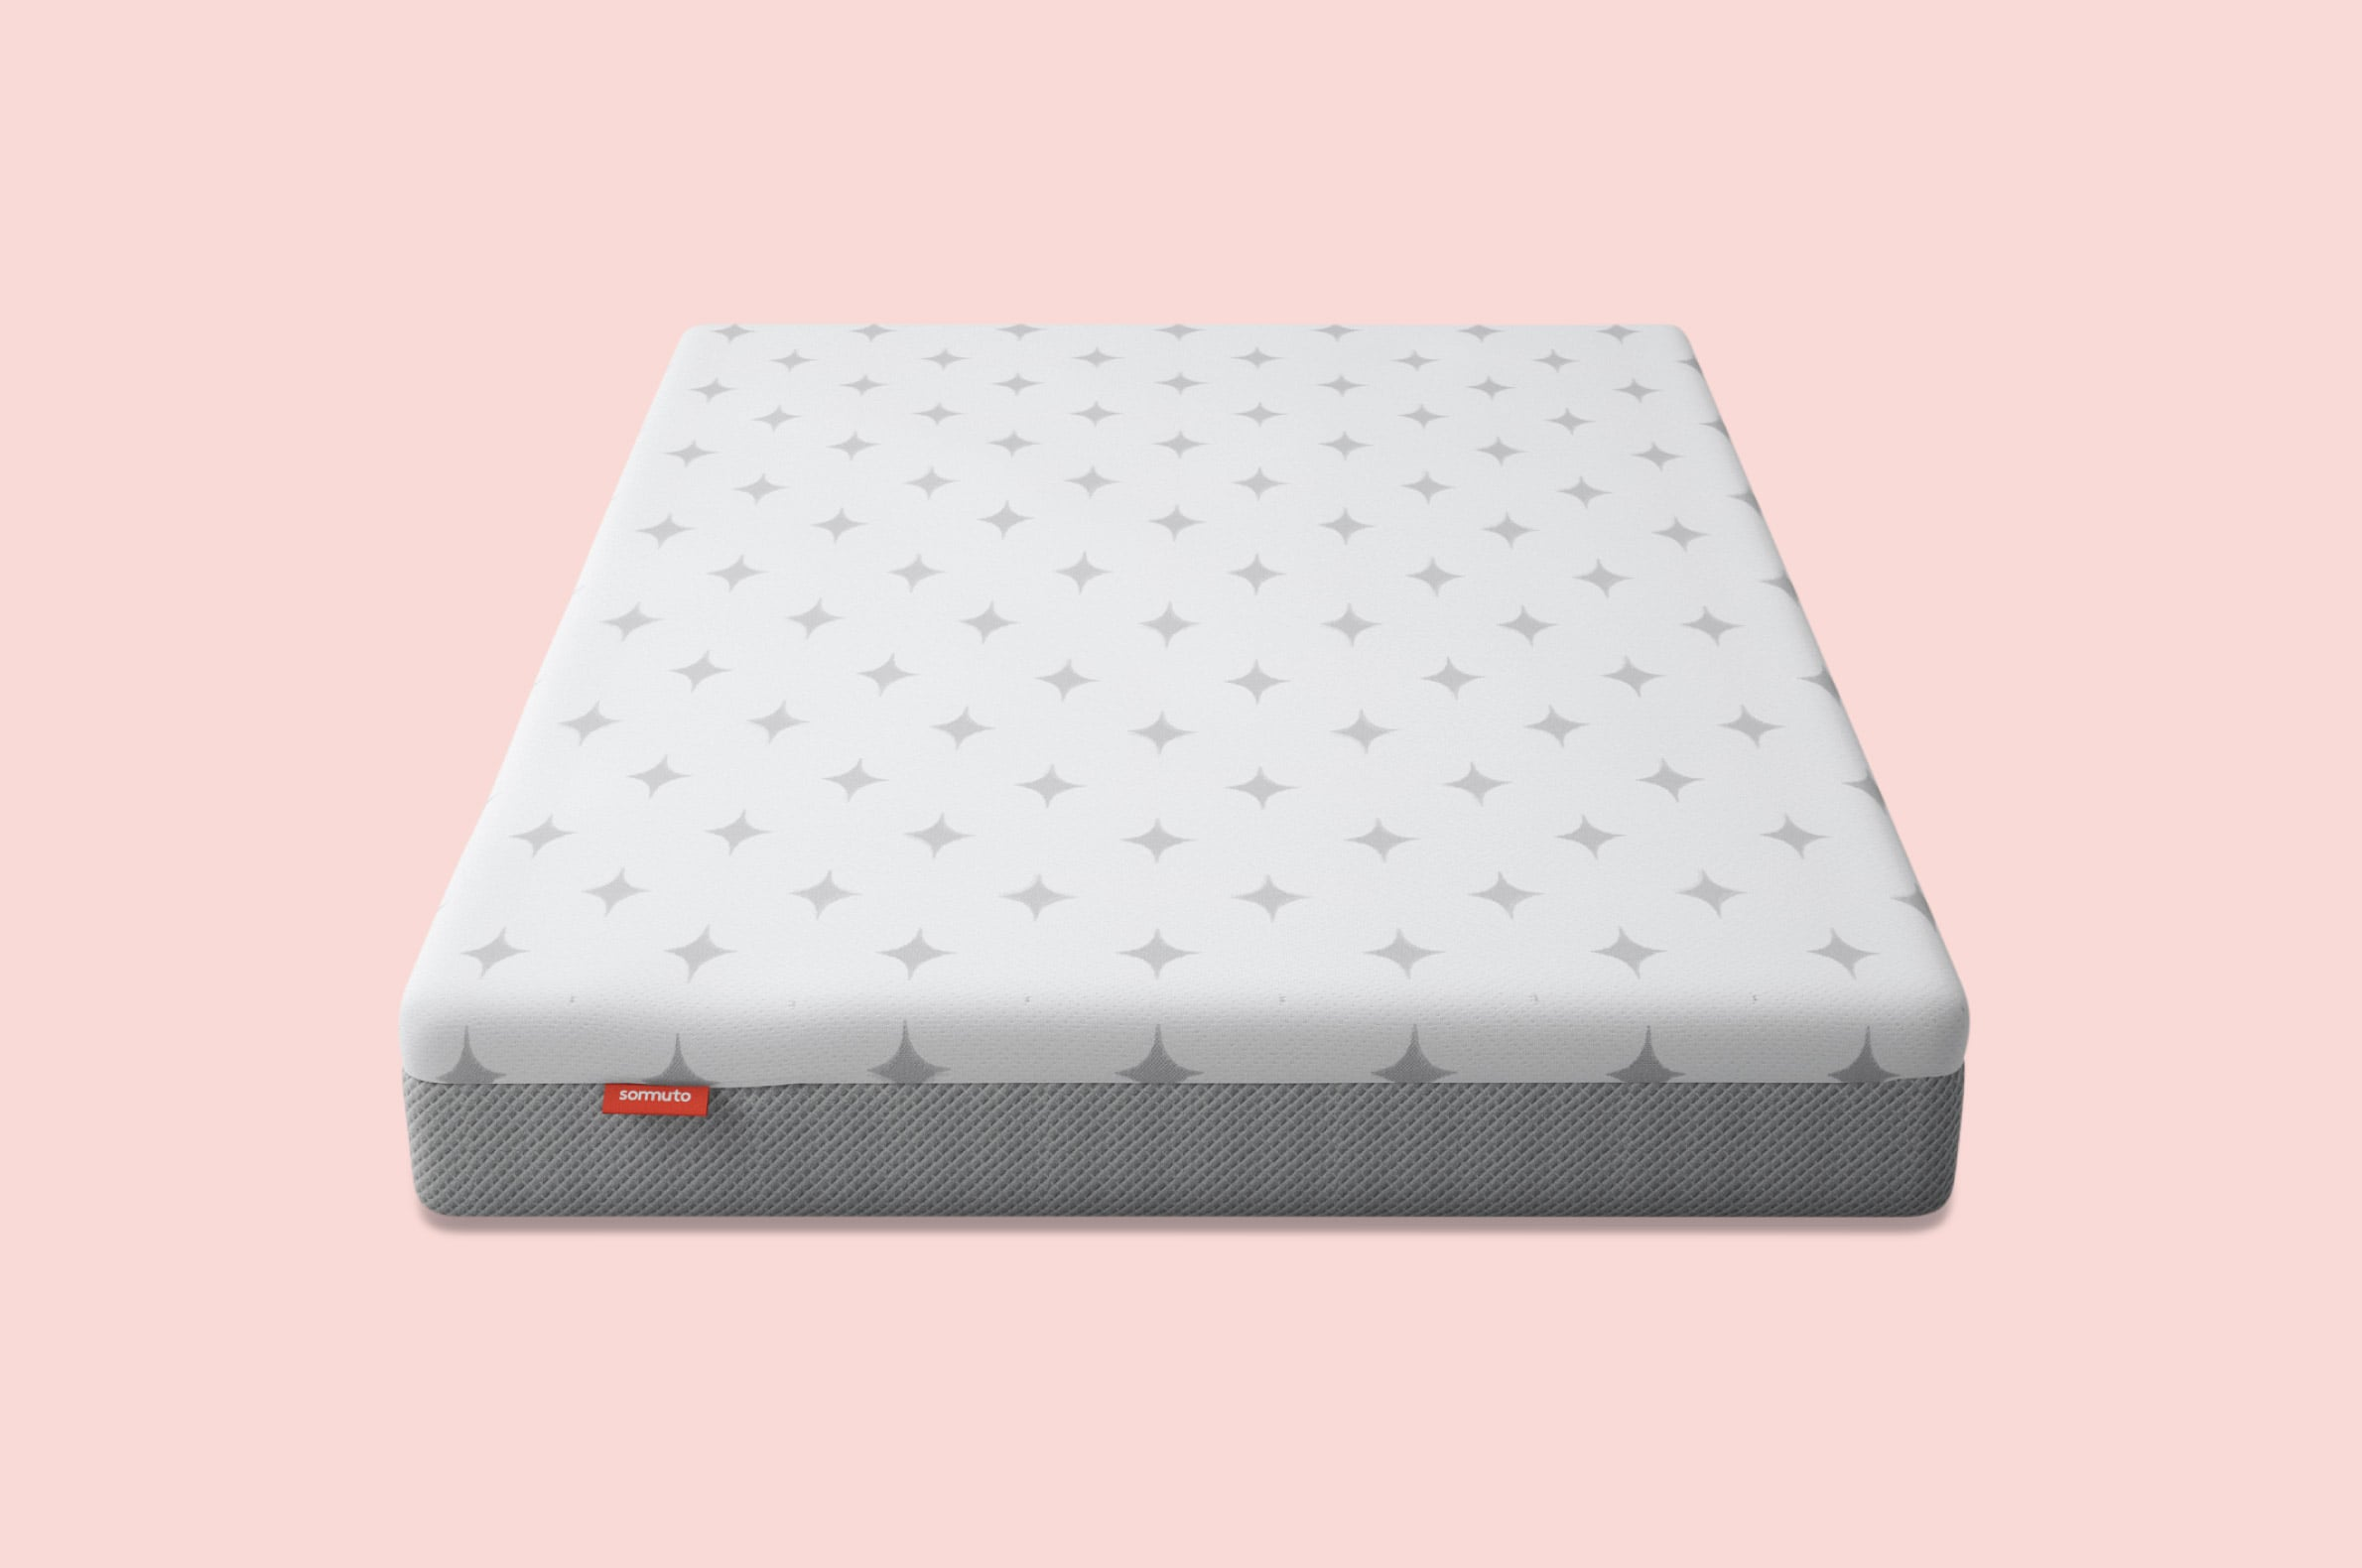 Sommuto Mattress Review